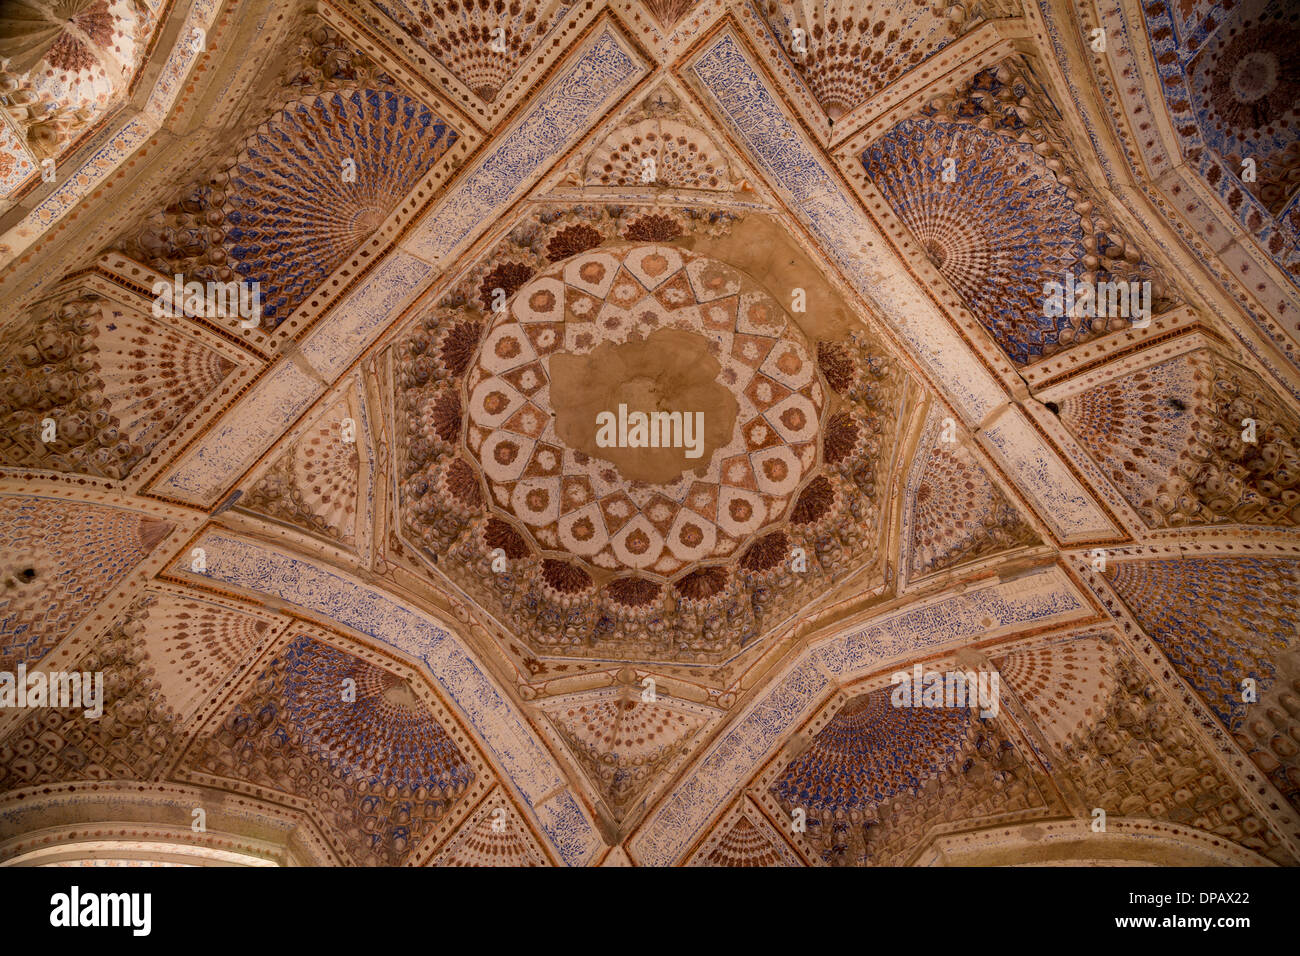 detail of painted interior of the mausoleum of Gawhar Shad, Herat, Afghanistan - Stock Image